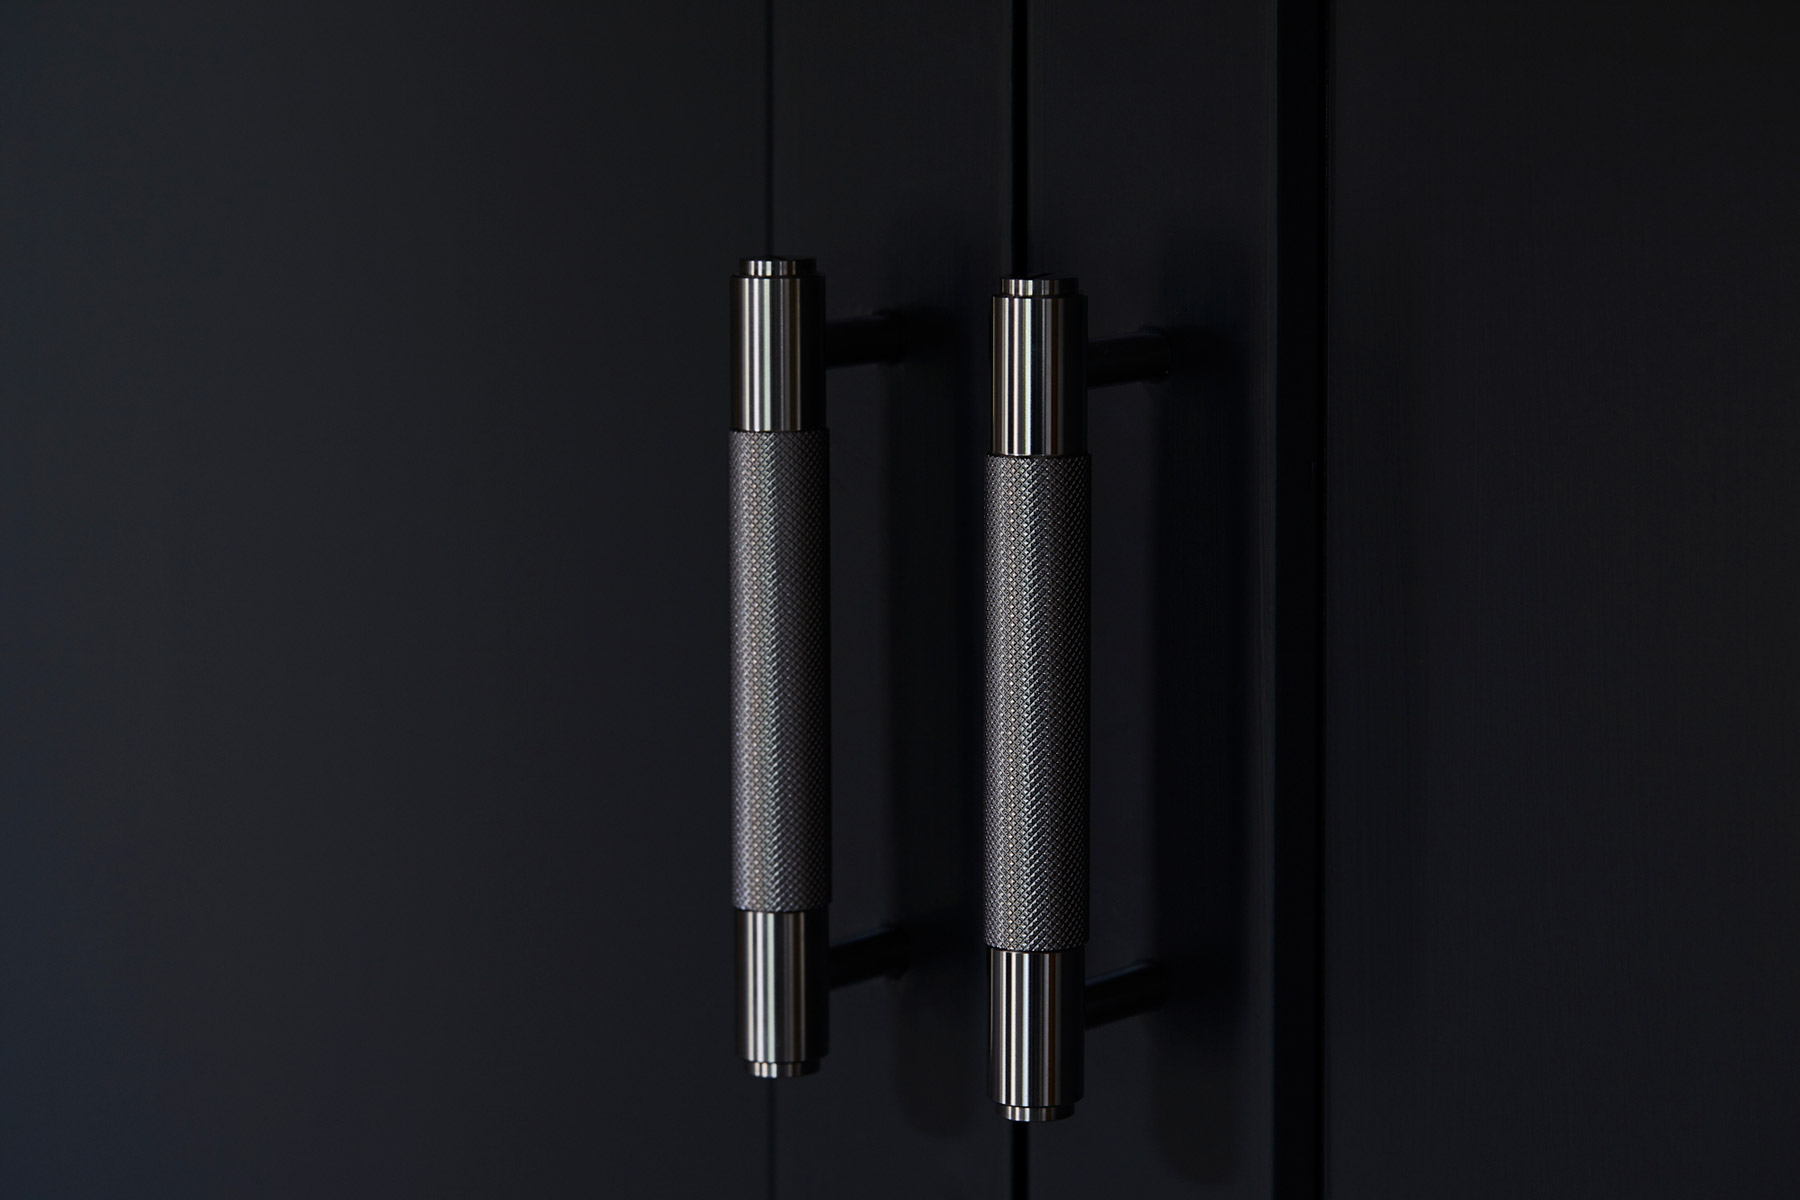 Knurled Buster + Punch brass kitchen handles on painted dark black cabinets